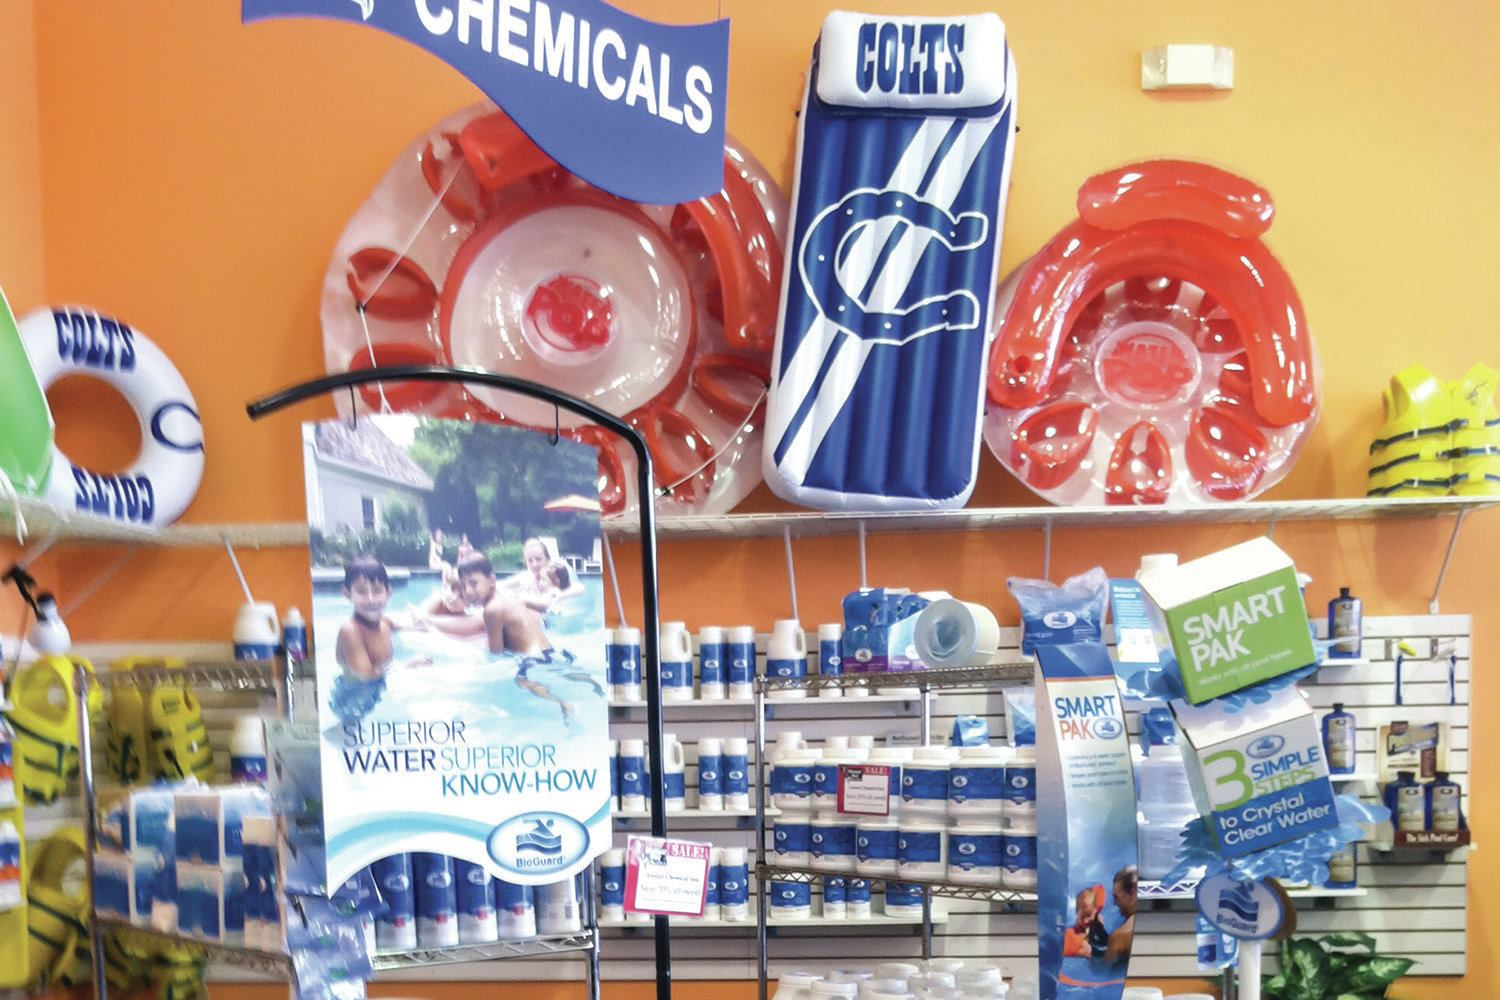 Car Maintenance Log >> Chemical Displays Keep Customers Coming to the Pool Store ...